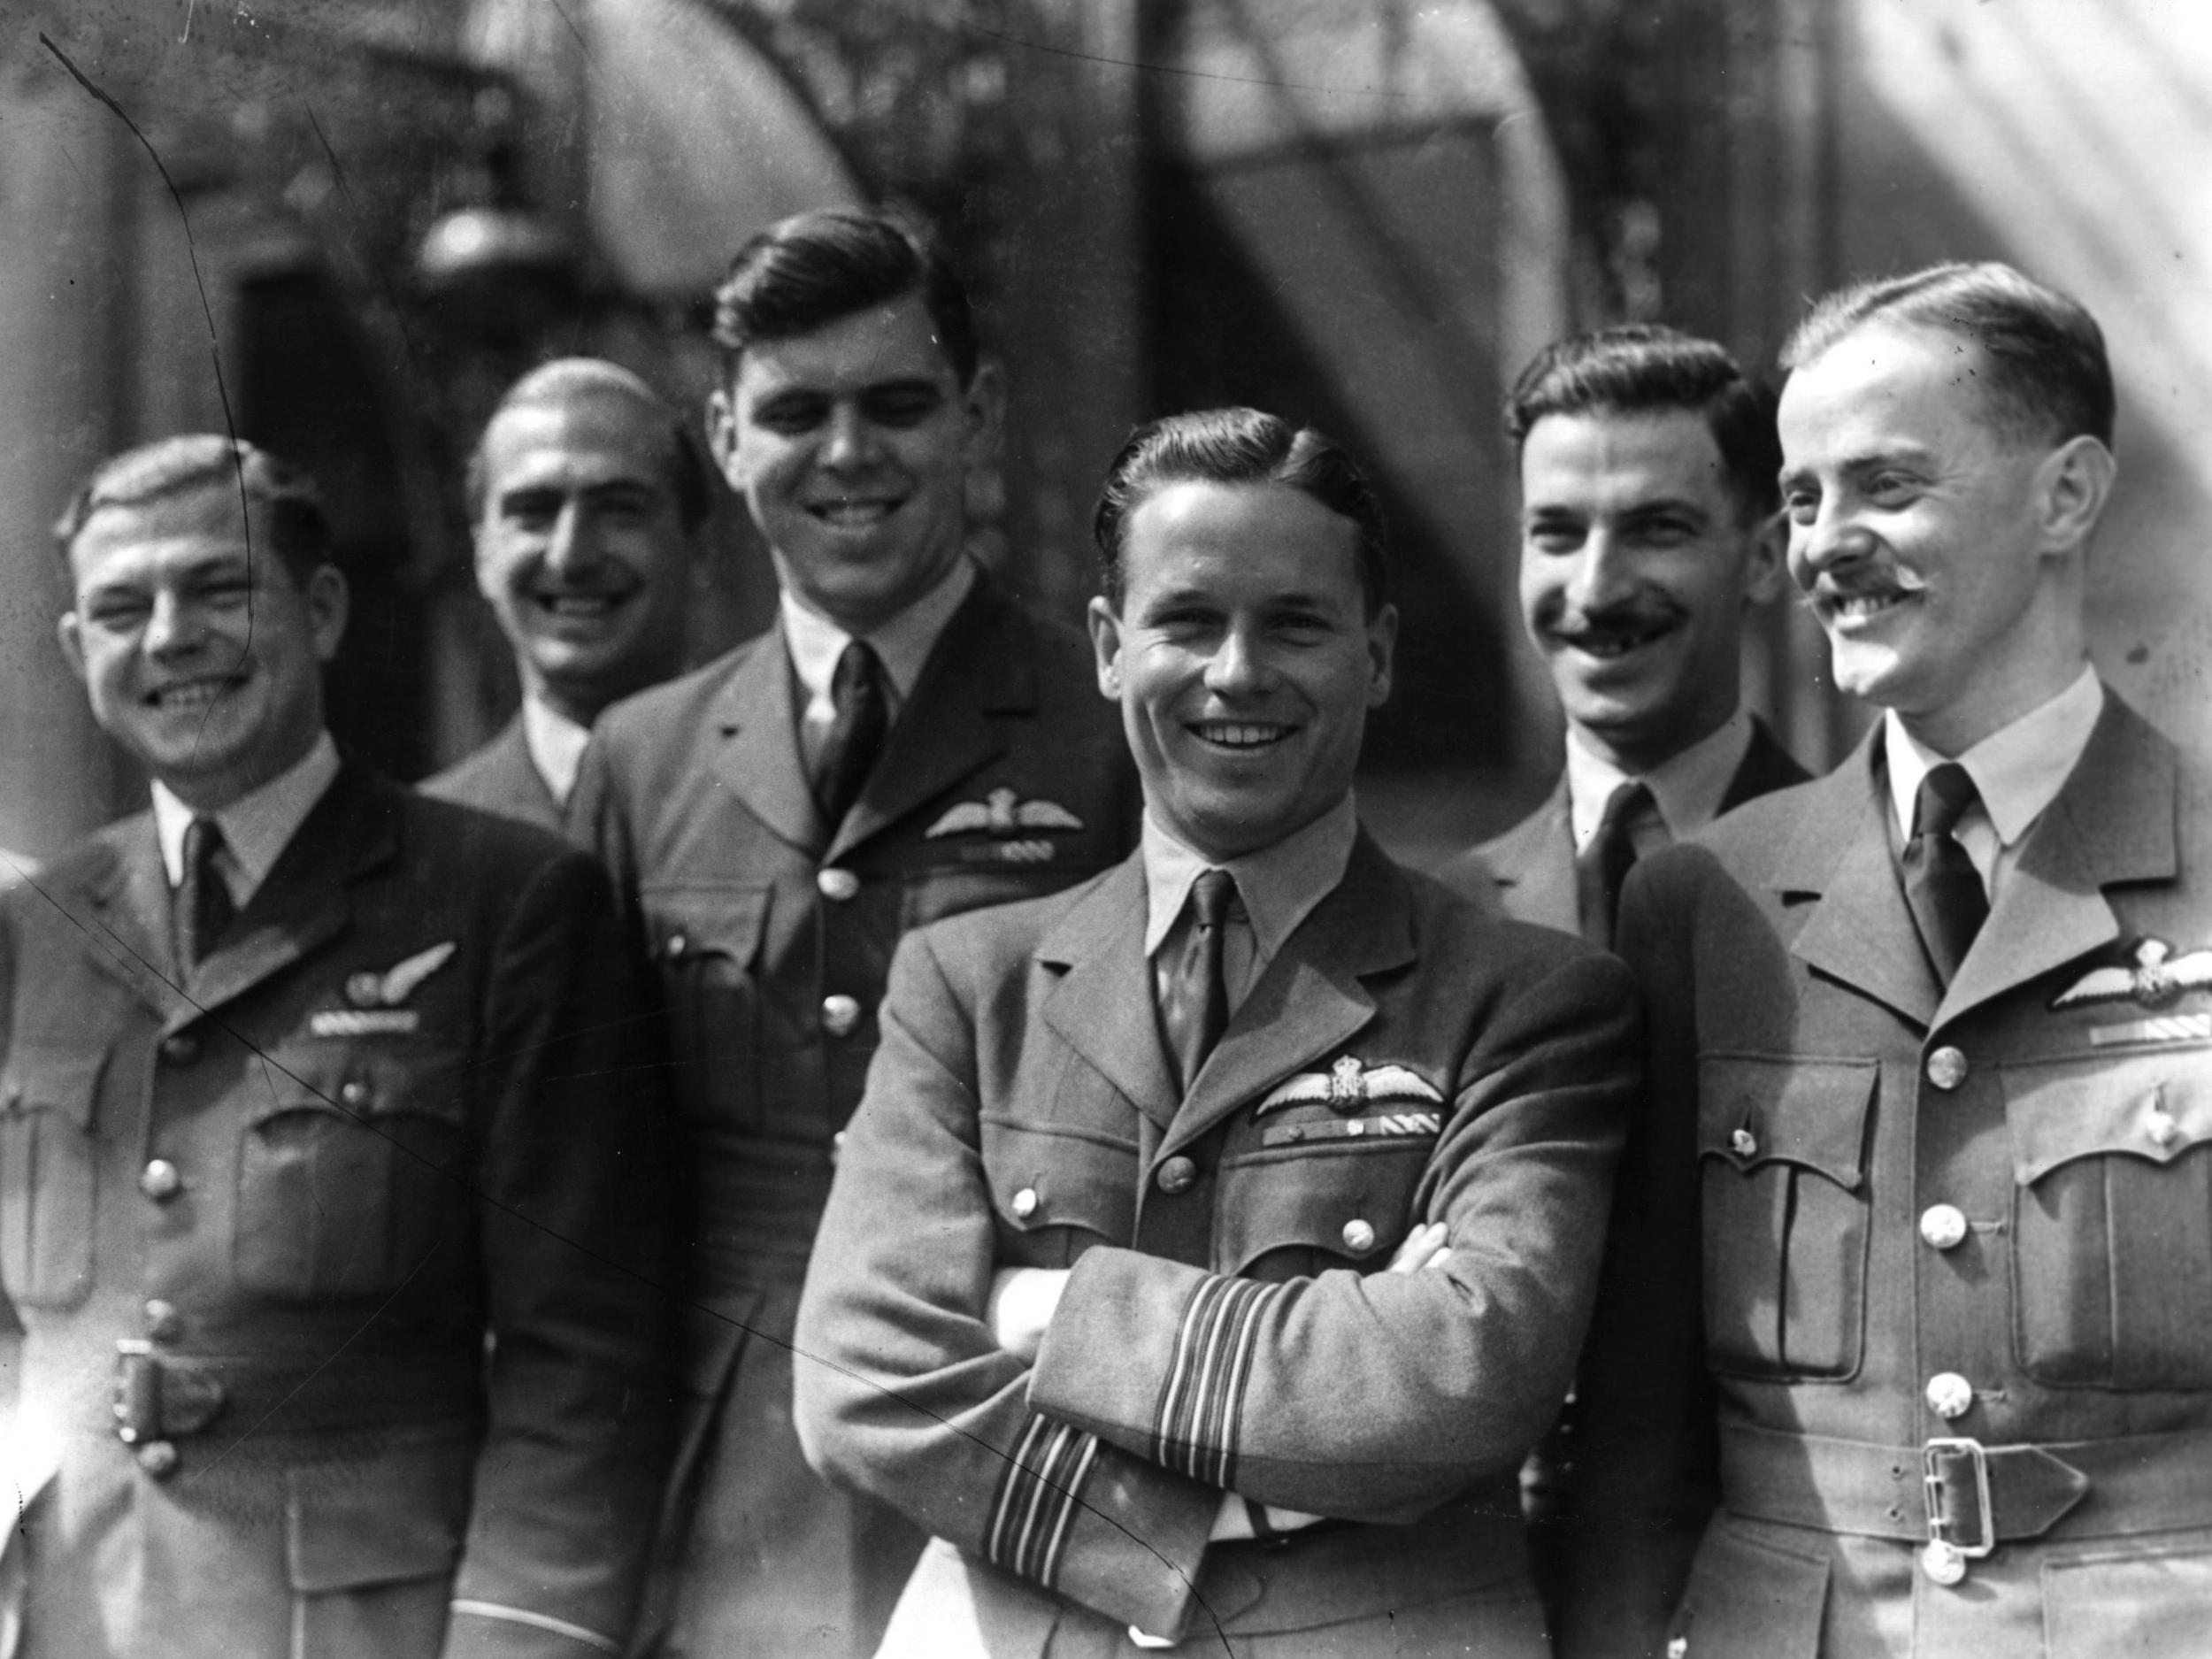 The Dambusters 75 years on: How marbles inspired the Second World